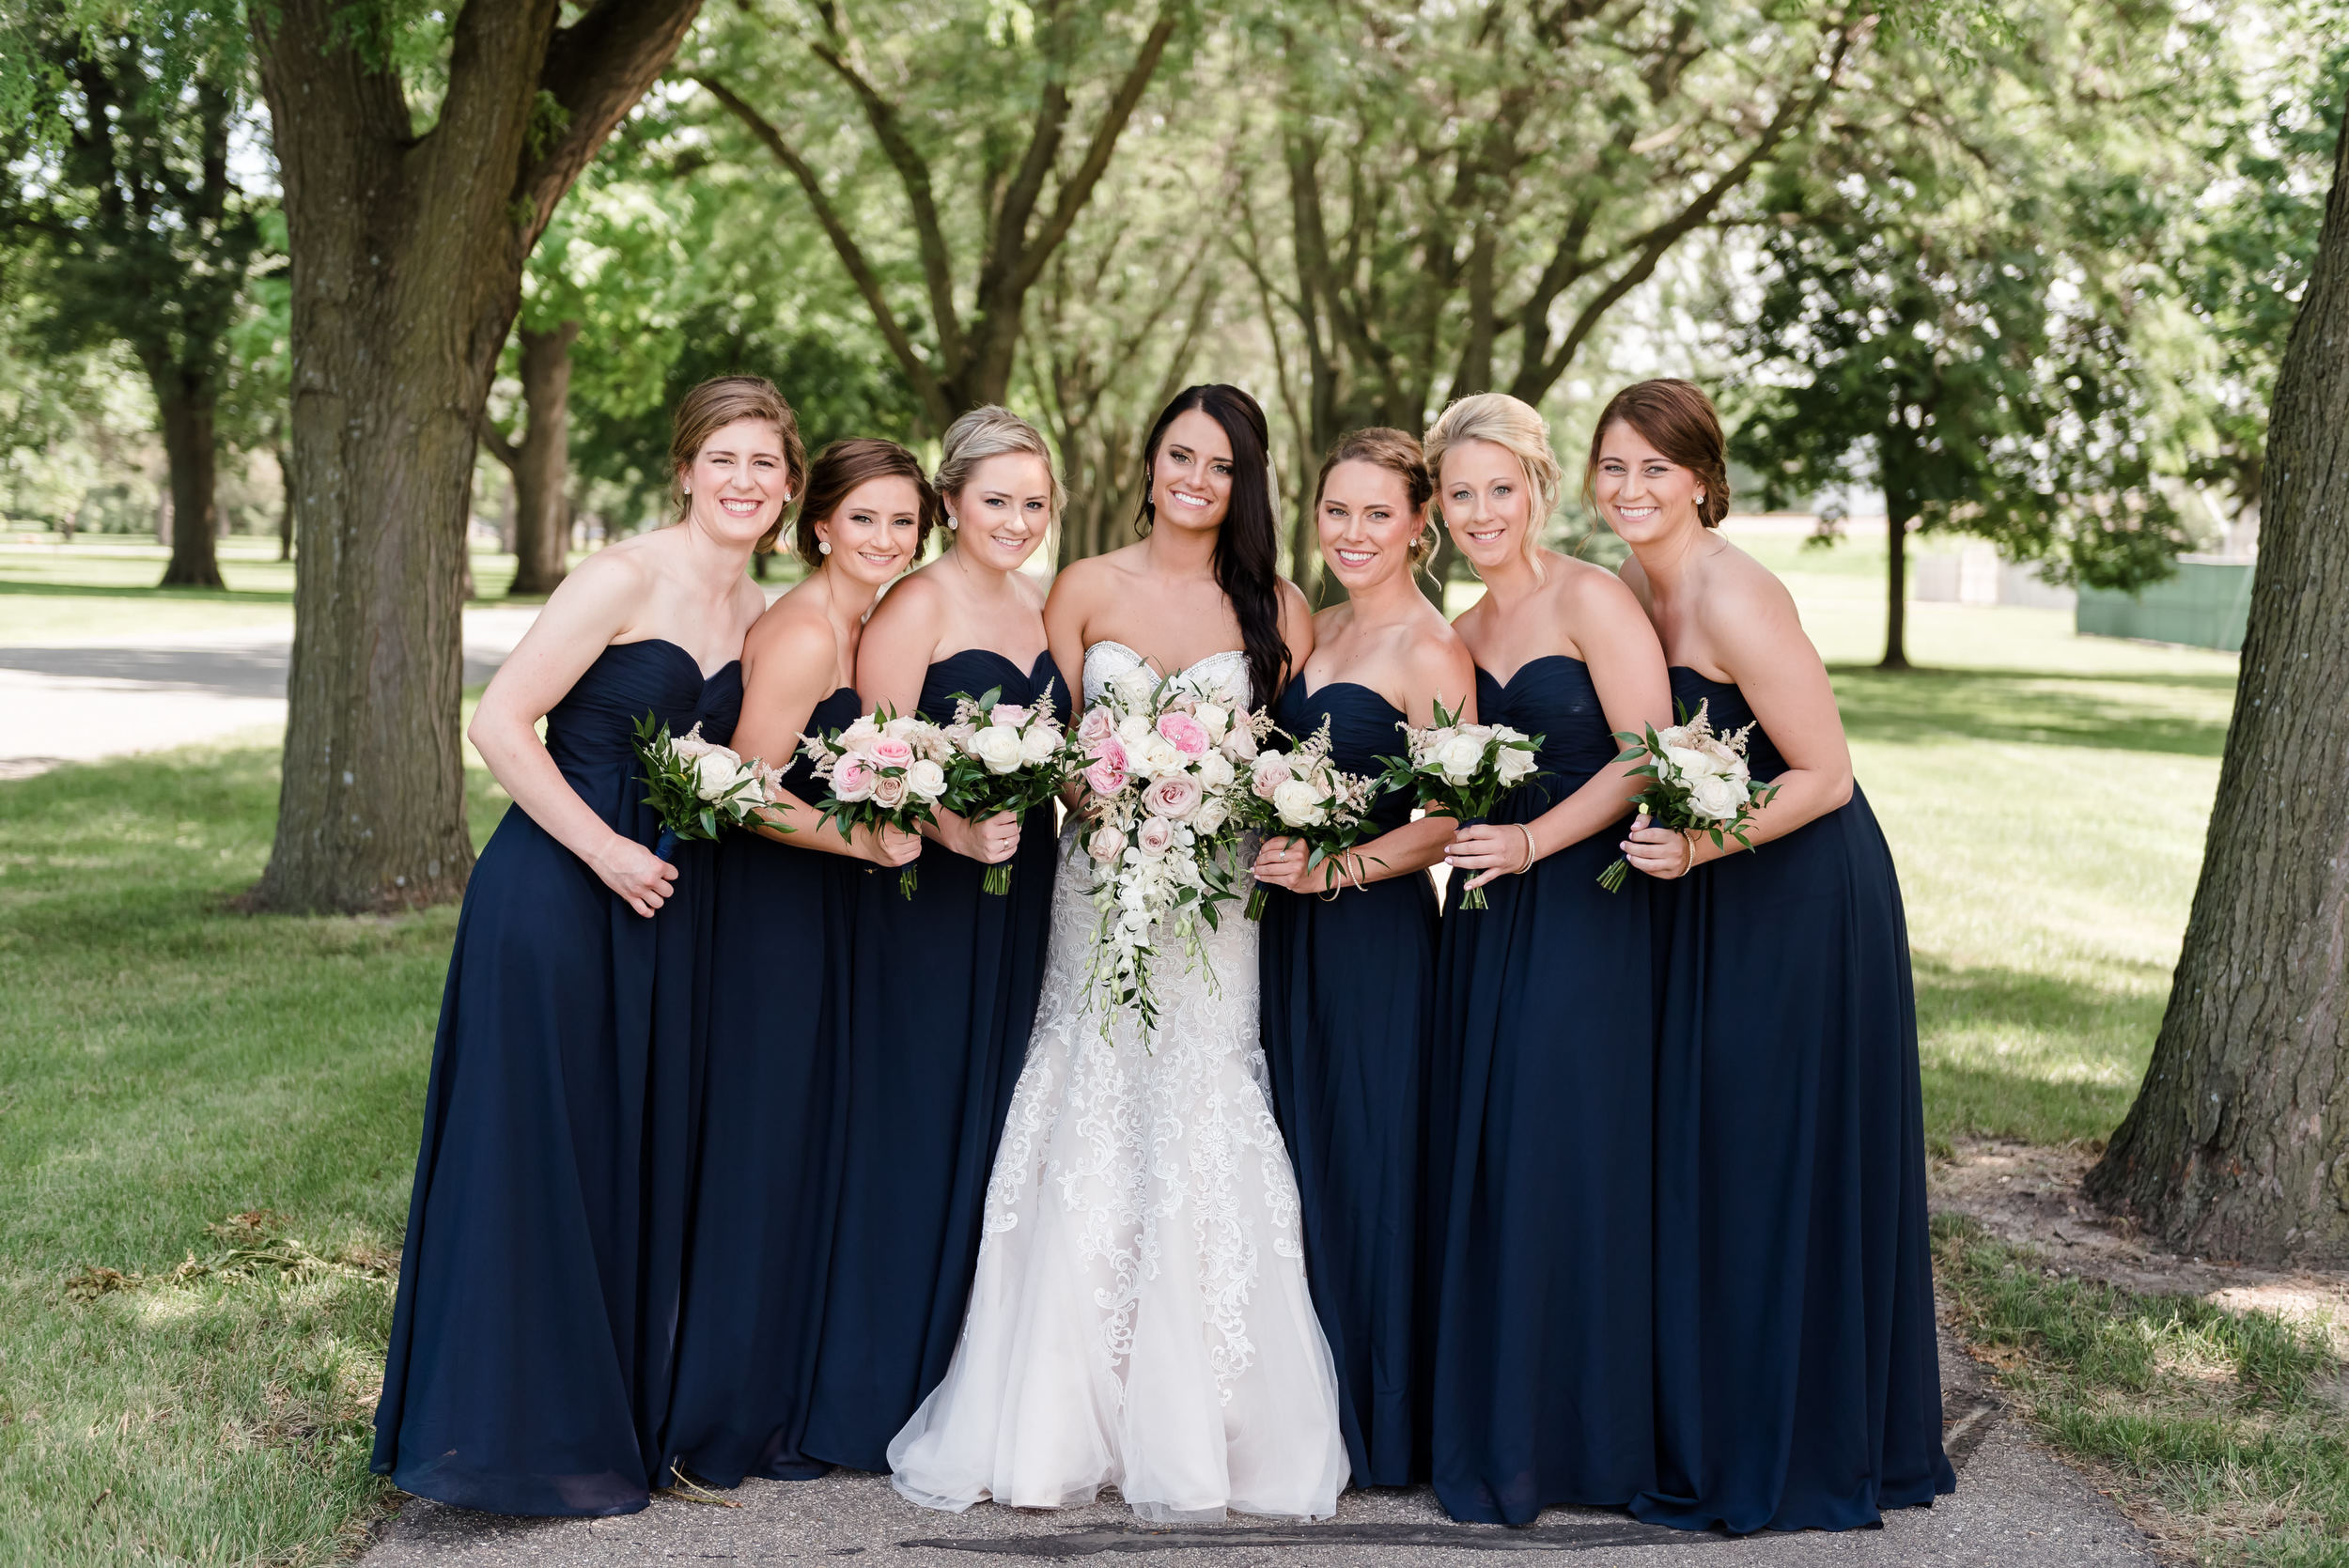 Layce and Brandon - Wedding - Bridal Party and Family - Outdoor Portraits-9.jpg